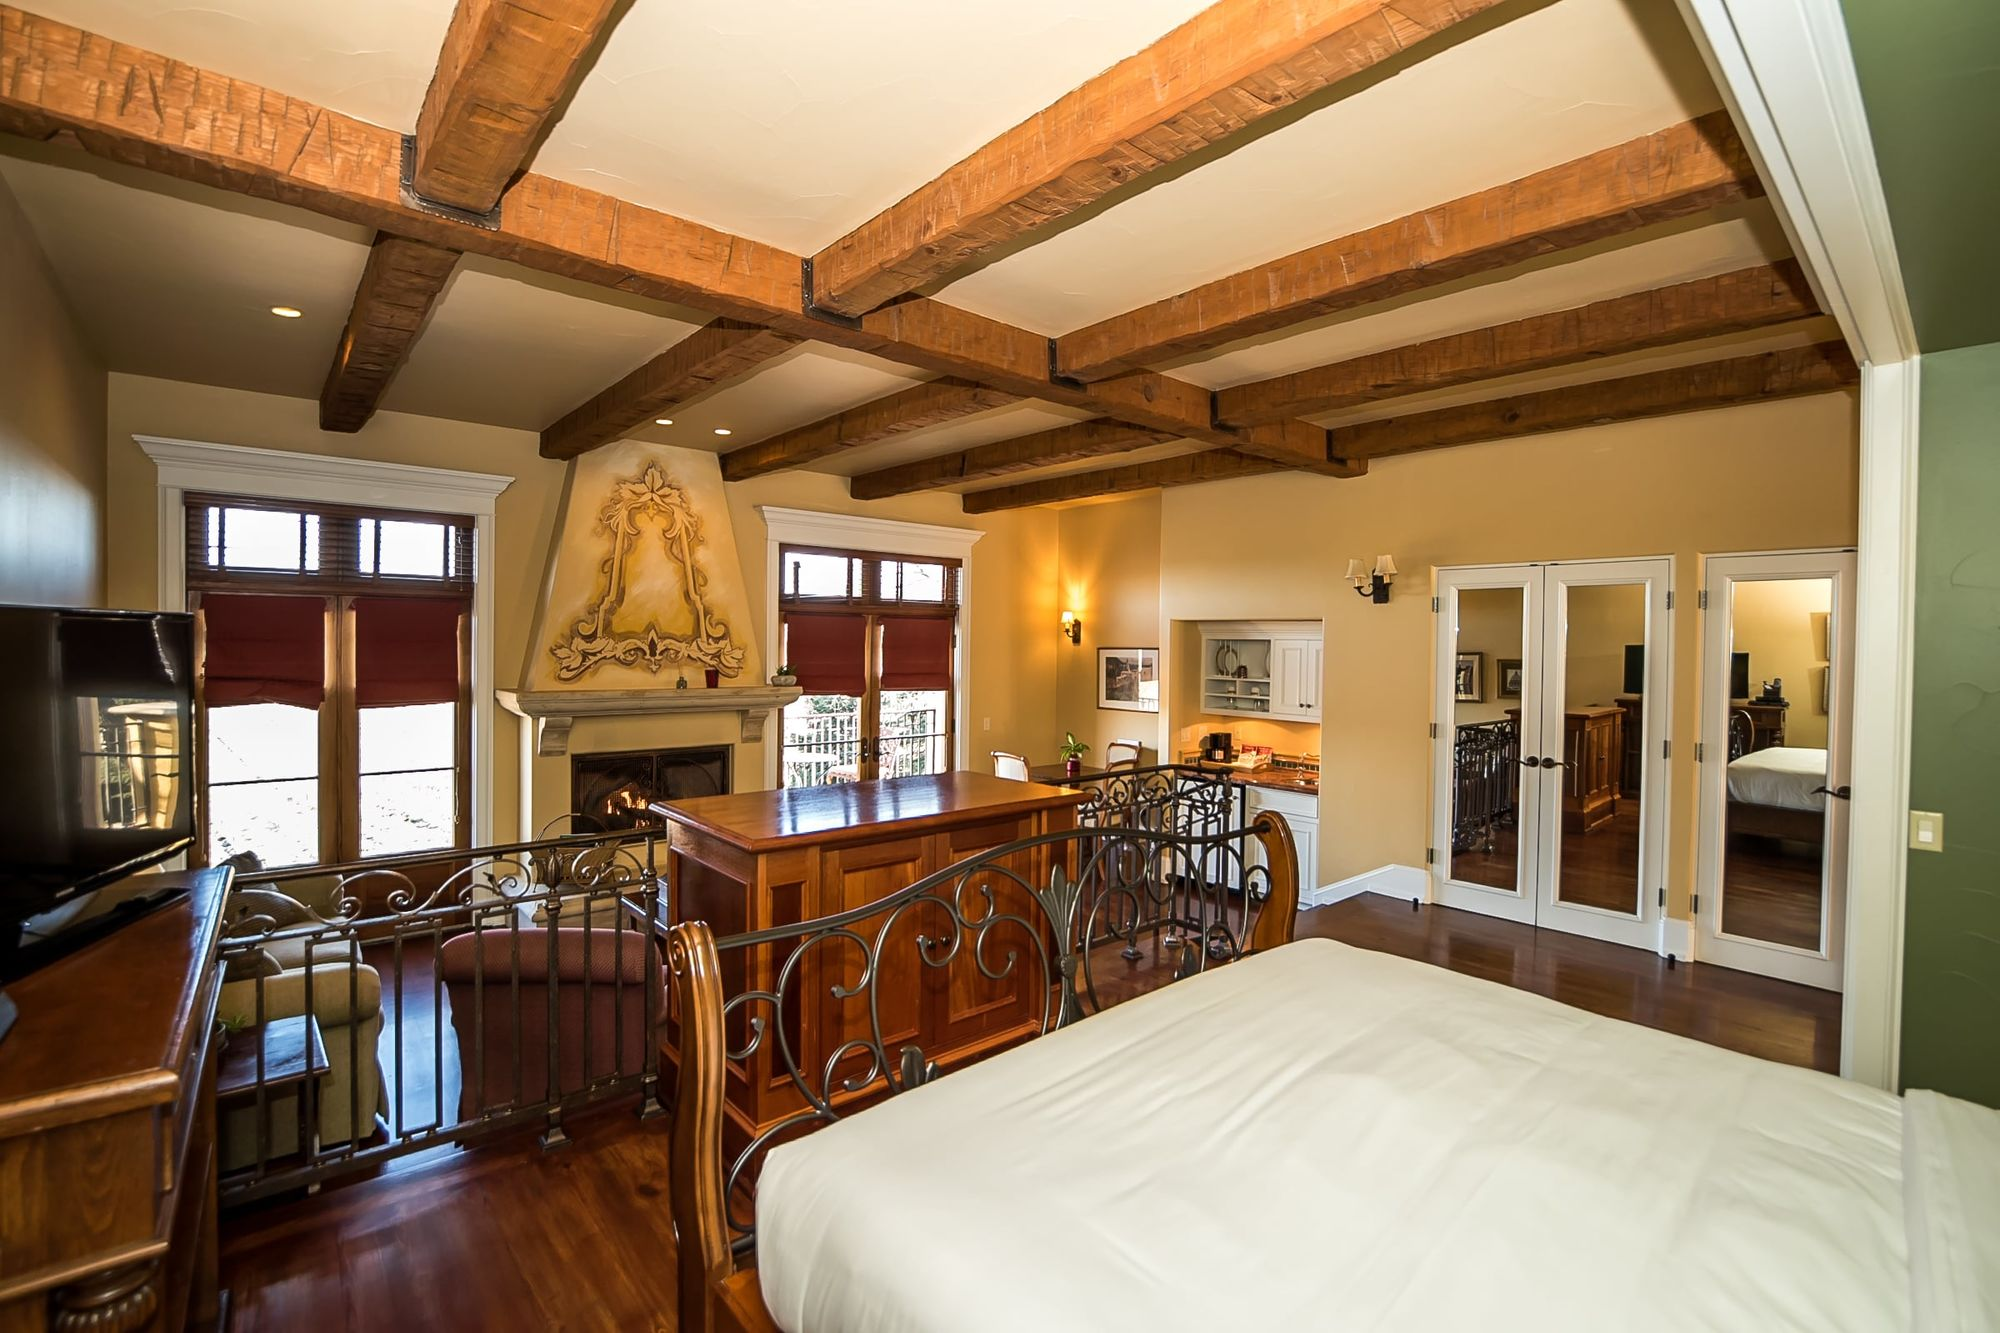 Room with rafters on the ceiling and fireplace with decorative chimney breast